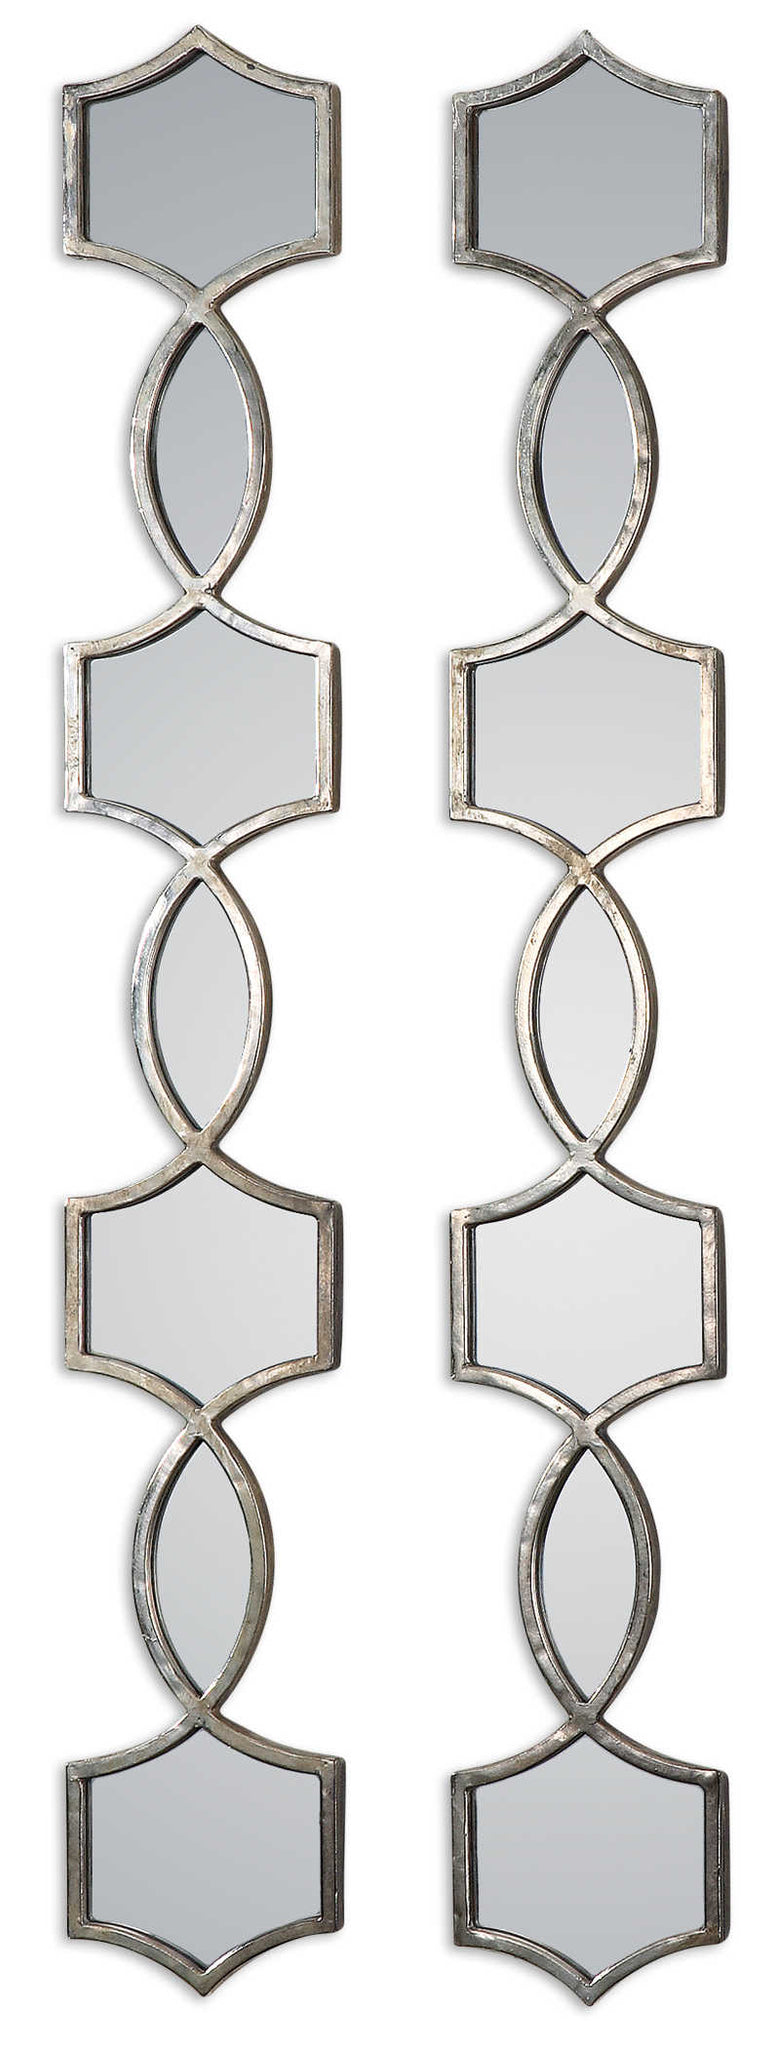 Metal Finished Decorative Mirror- Set of 2